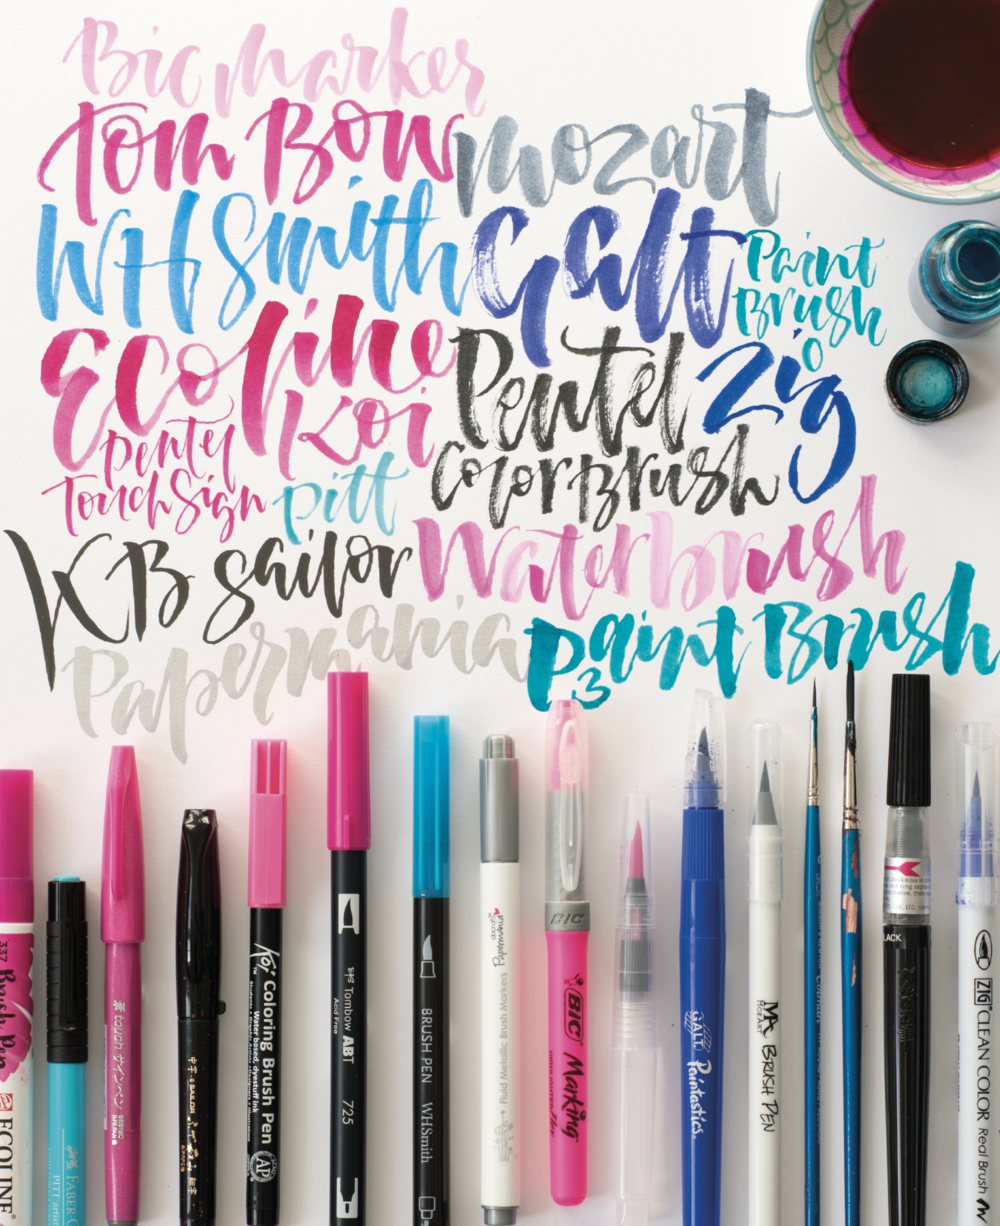 In this book we talk about some of the  brush lettering products  available, although this is constantly changing and growing as calligraphy becomes more and more popular. We show you different ways in which you can use them, whilst sharing secrets of lettering to give you the confidence to make your own brilliant brush calligraphy.